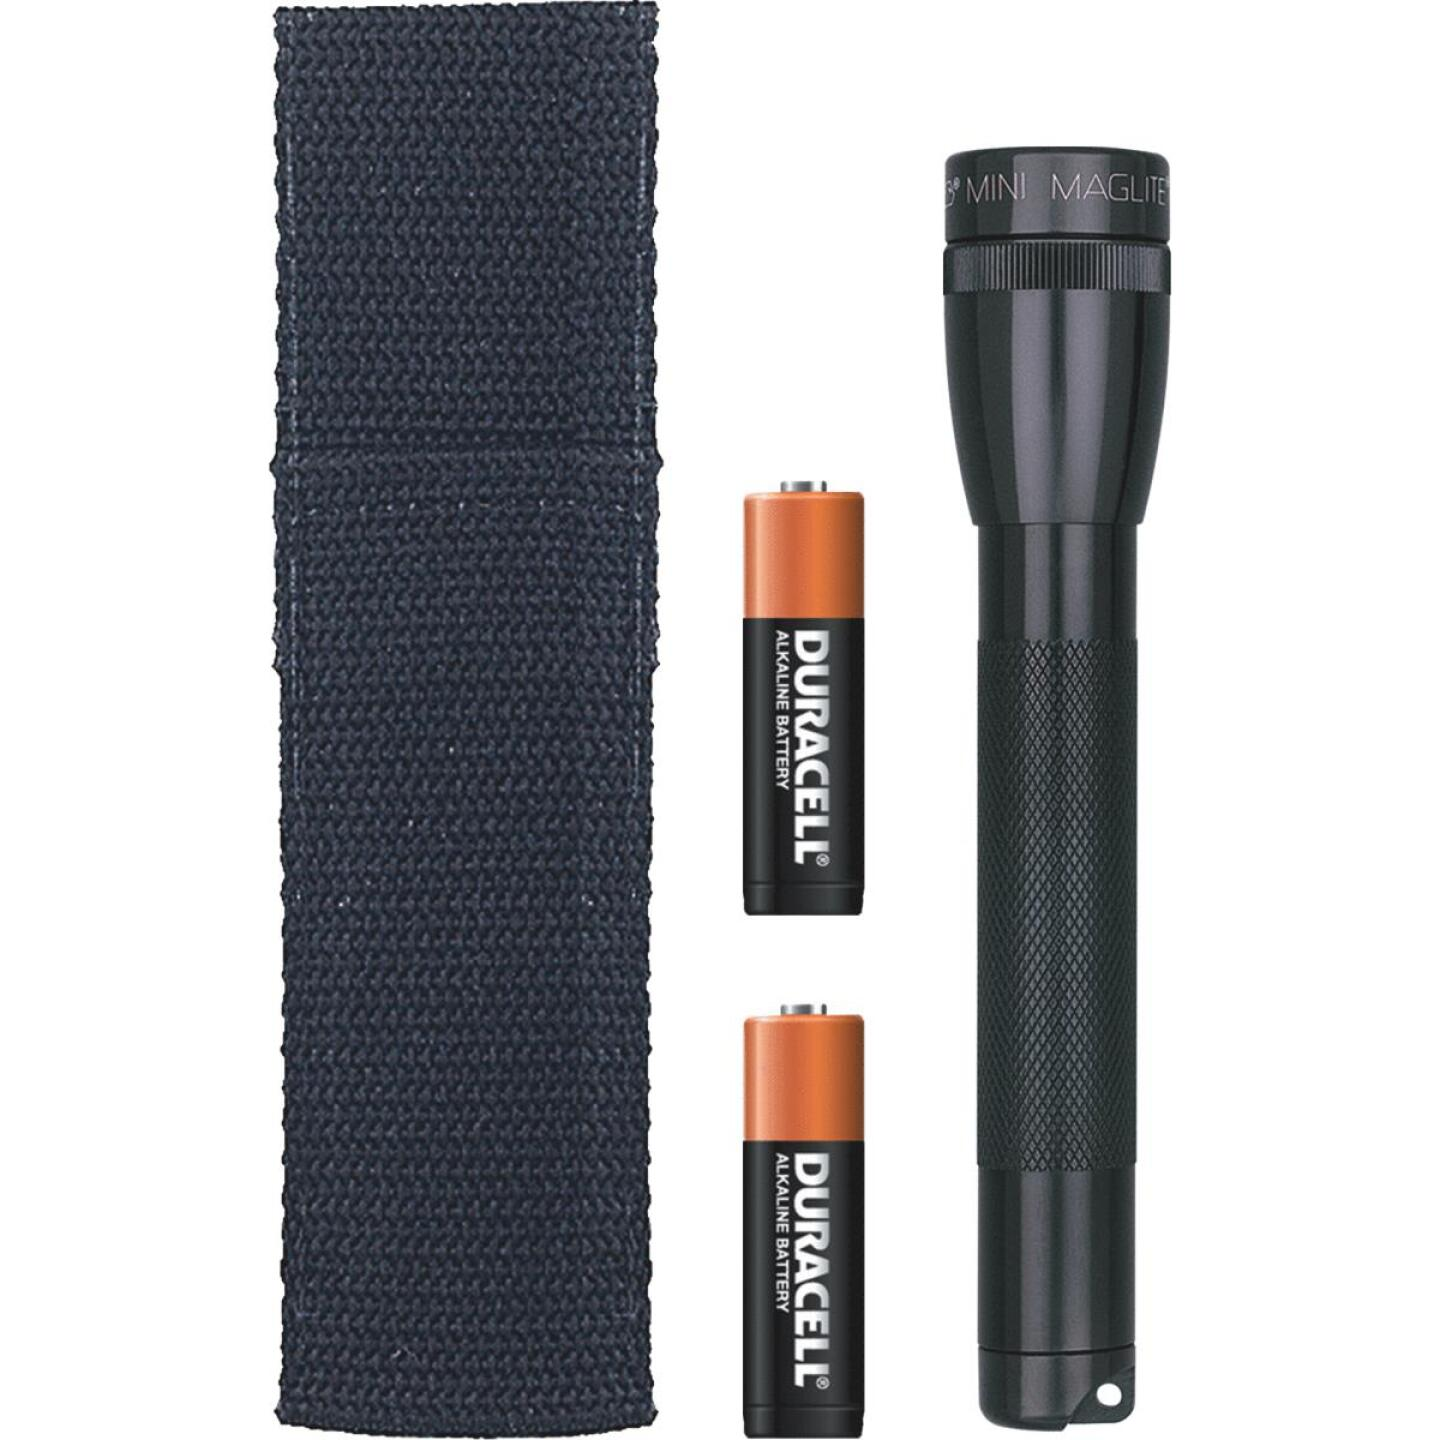 Maglite 14 Lm. Xenon 2AA Flashlight, Black Image 1